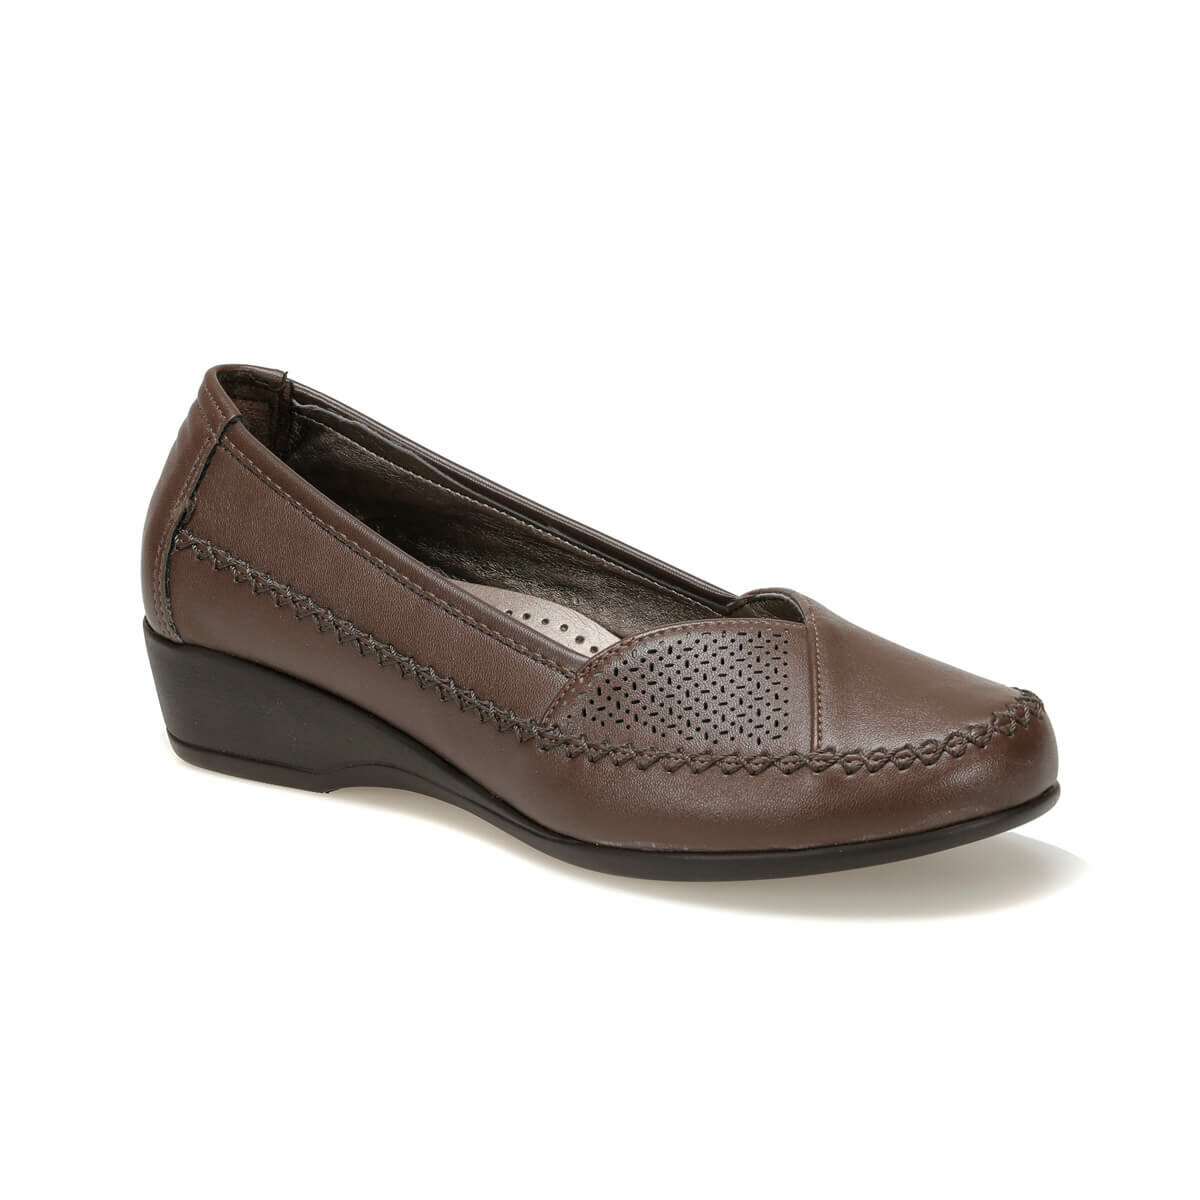 FLO 81.157280.Z Brown Women 'S Classic Shoes Polaris